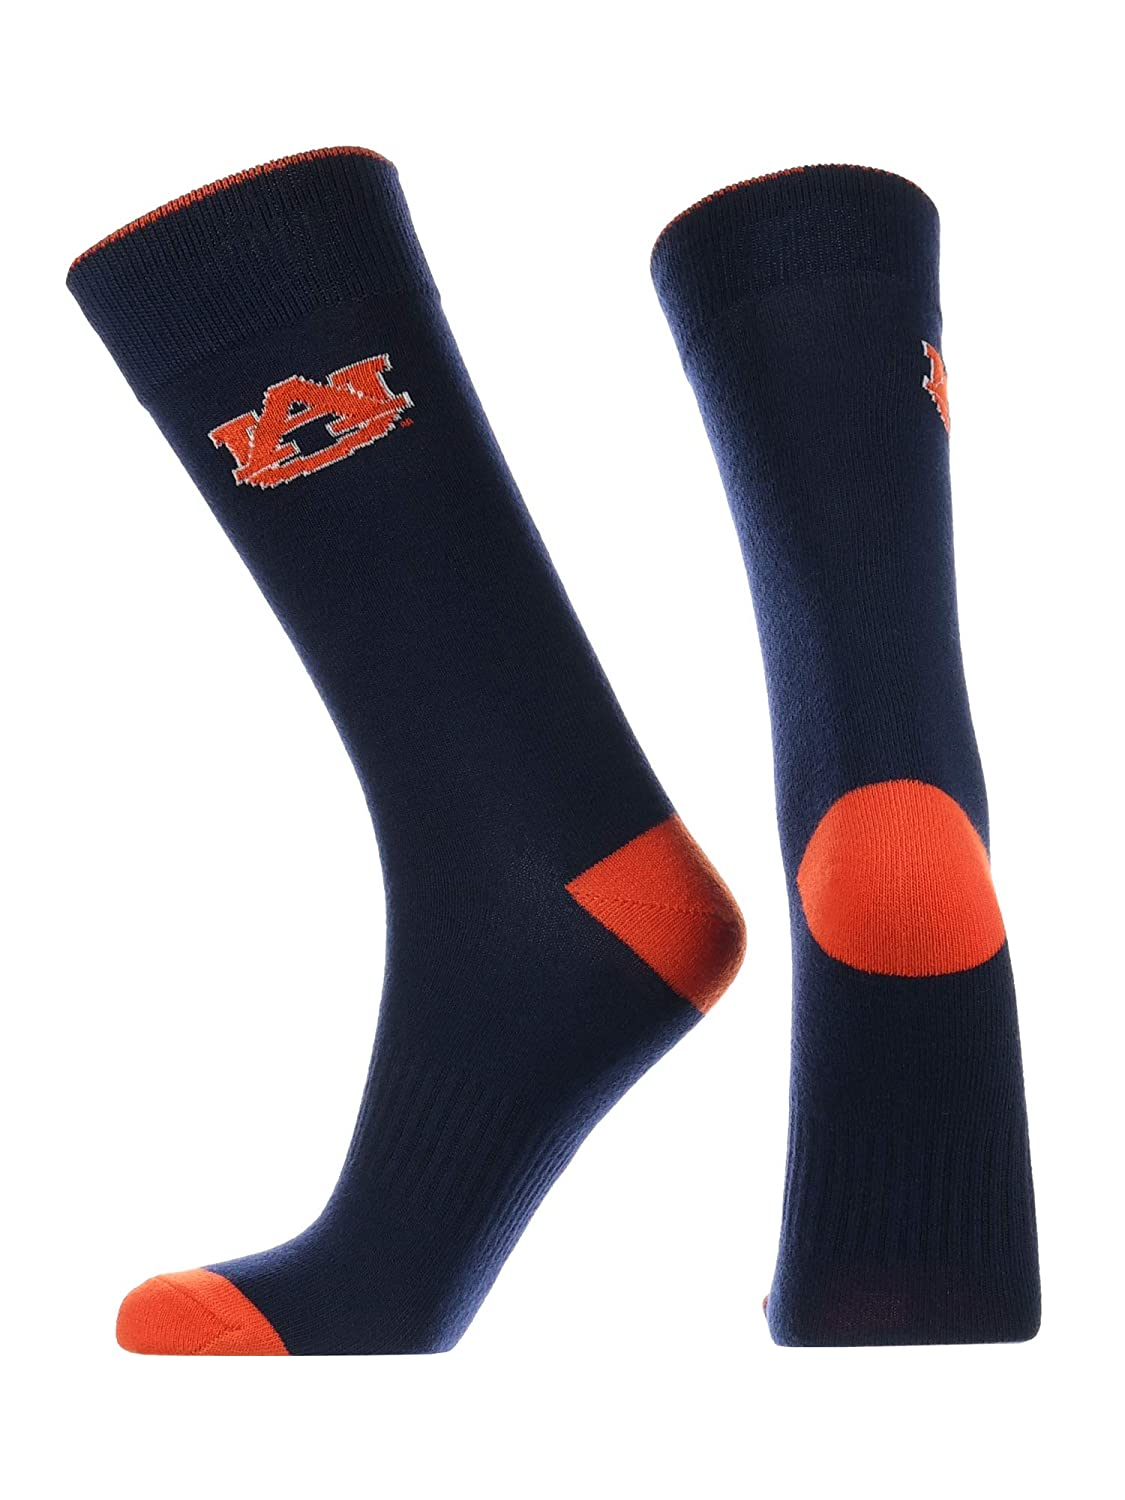 Auburn Tigers Dress Socks Deans List Crew Length Socks